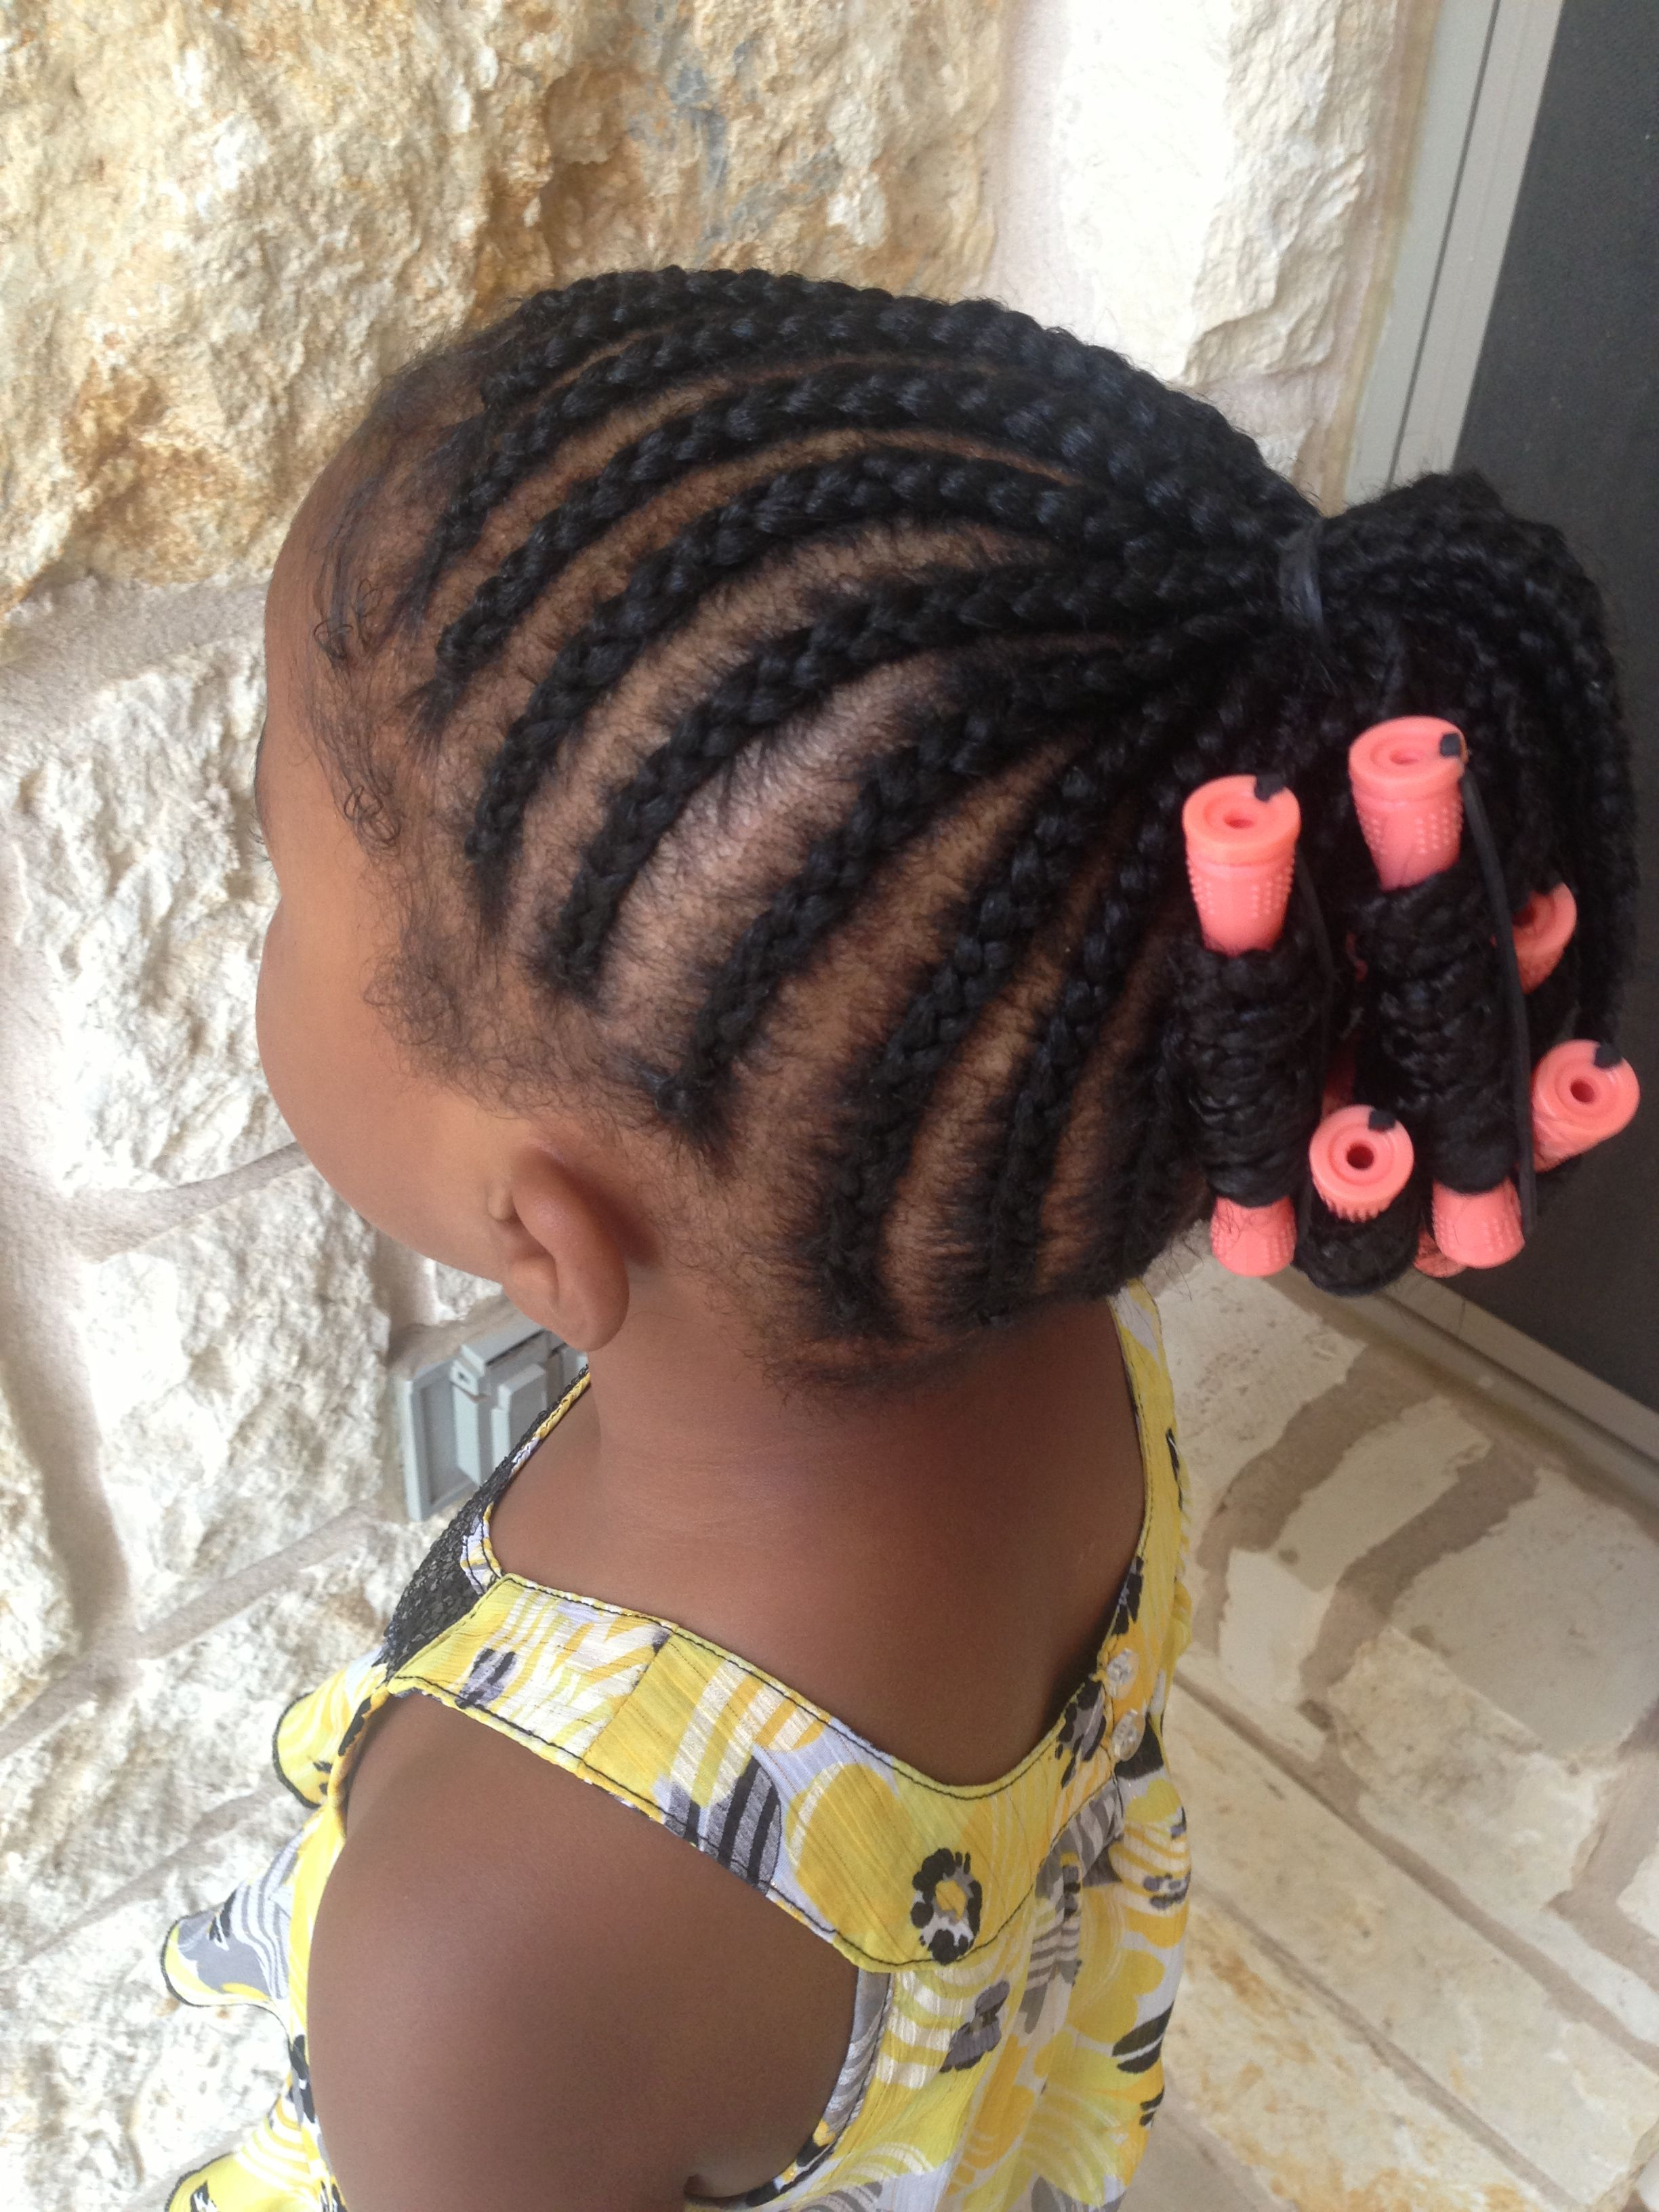 Pin By Brittany May On Hair Lil Girl Hairstyles Kids Braided Hairstyles Black Natural Hairstyles